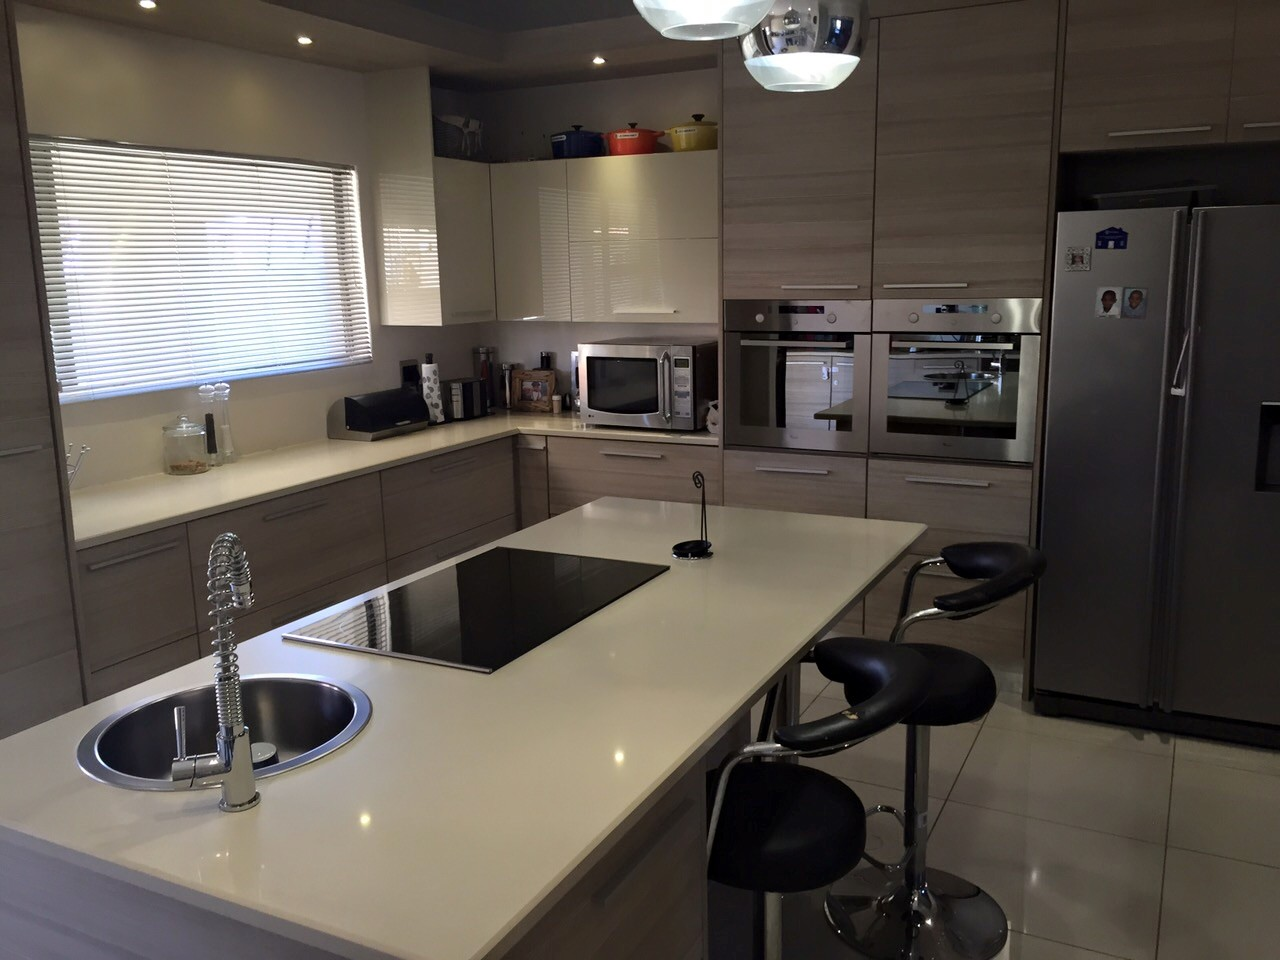 Appleberry Design Appleberry Design Kitchen Design Company In Polokwane Expert Designers Of